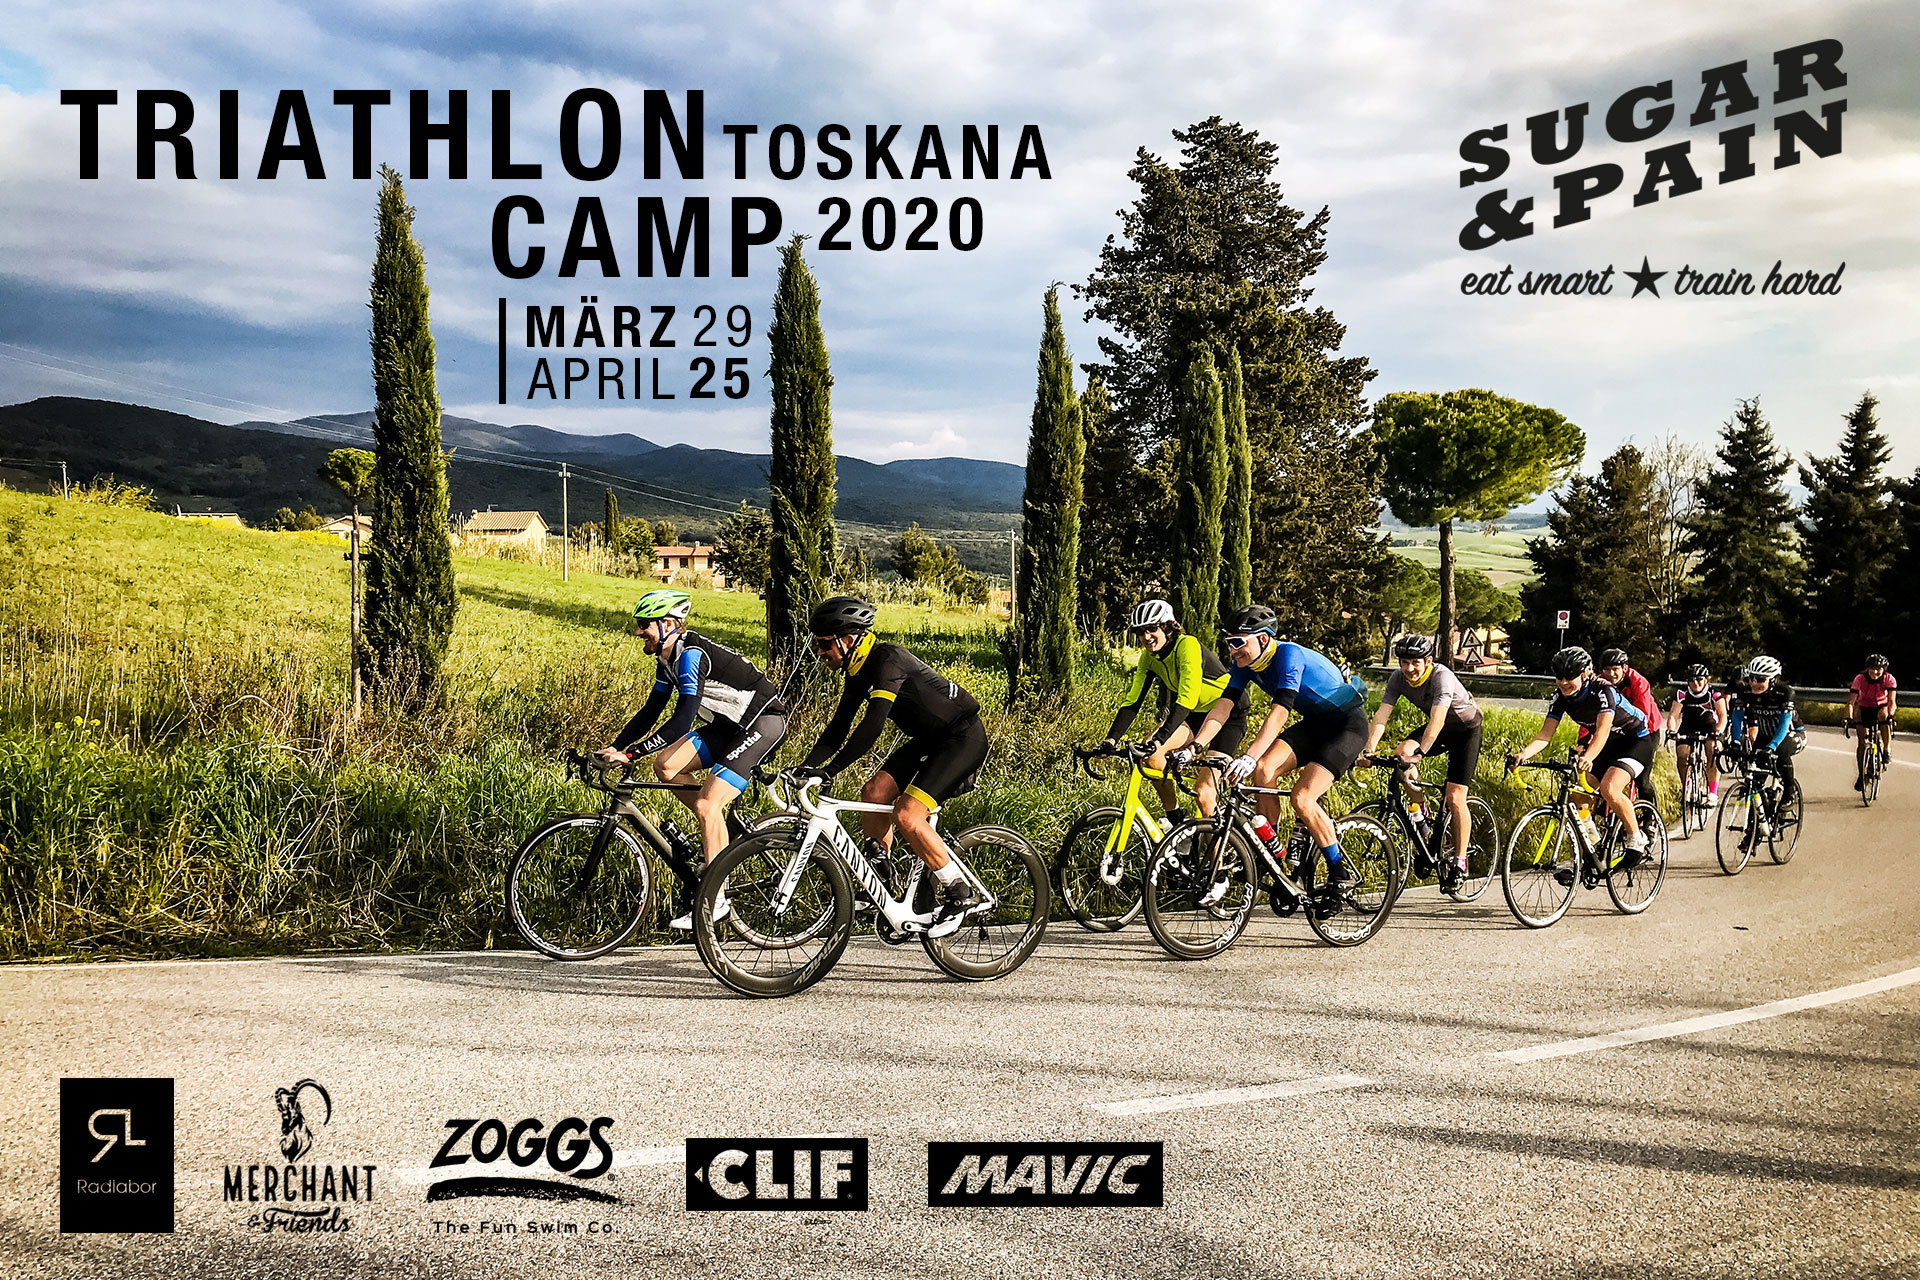 SUGAR & PAIN TRI CAMP #TO20 – Das Triathlon Traningslager Toskana 2020